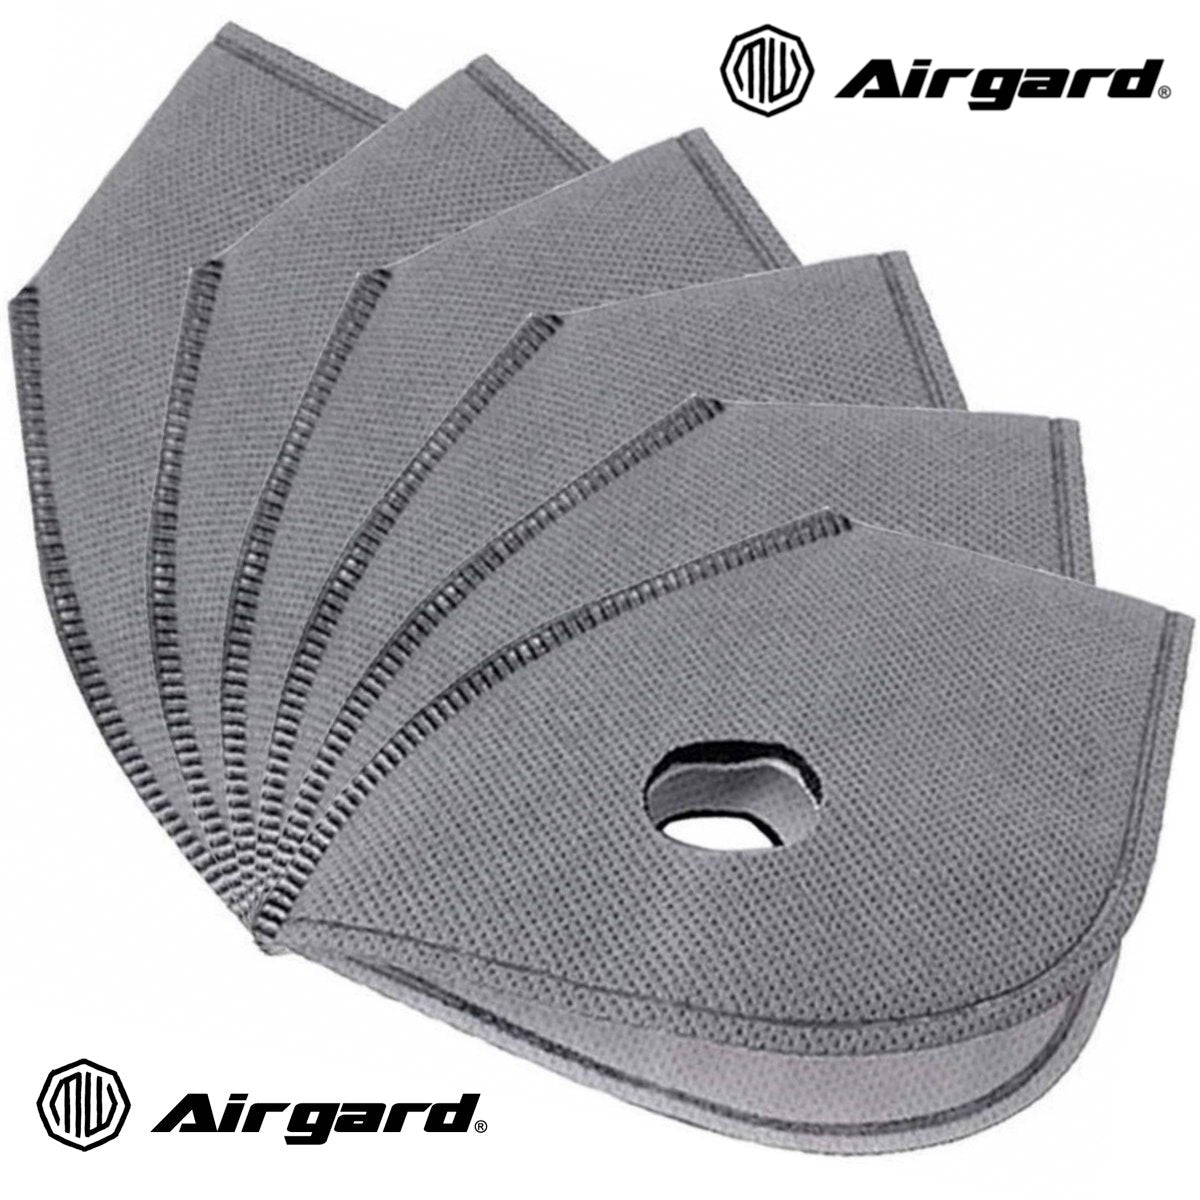 Airgard® Replacement Filter PM2.5 (5 Pack)